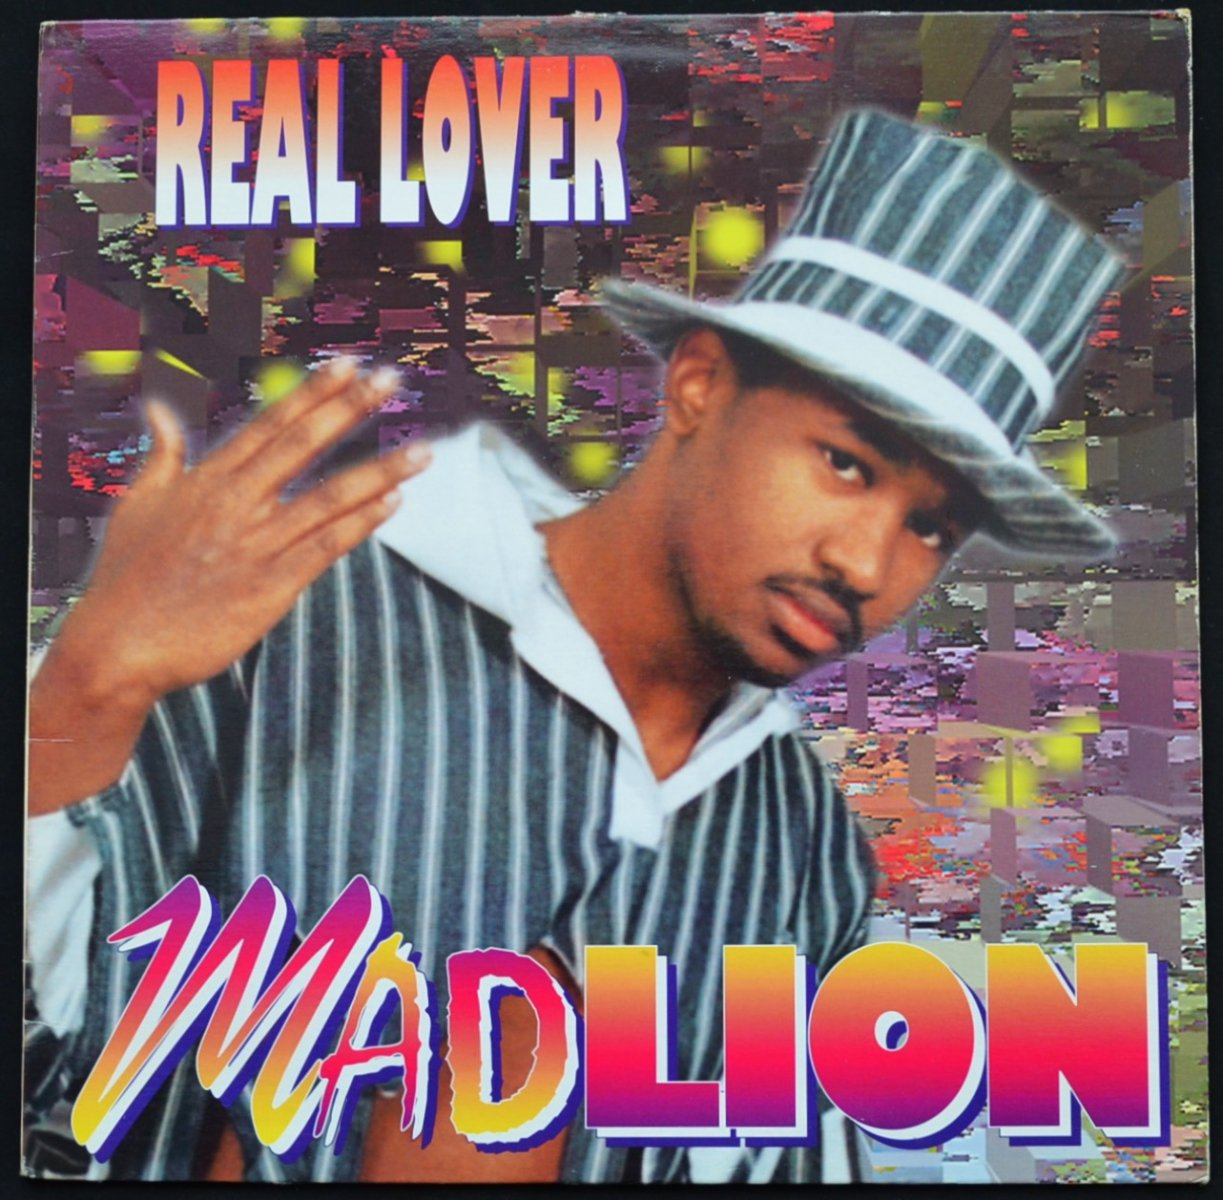 MAD LION / REAL LOVER (1LP)